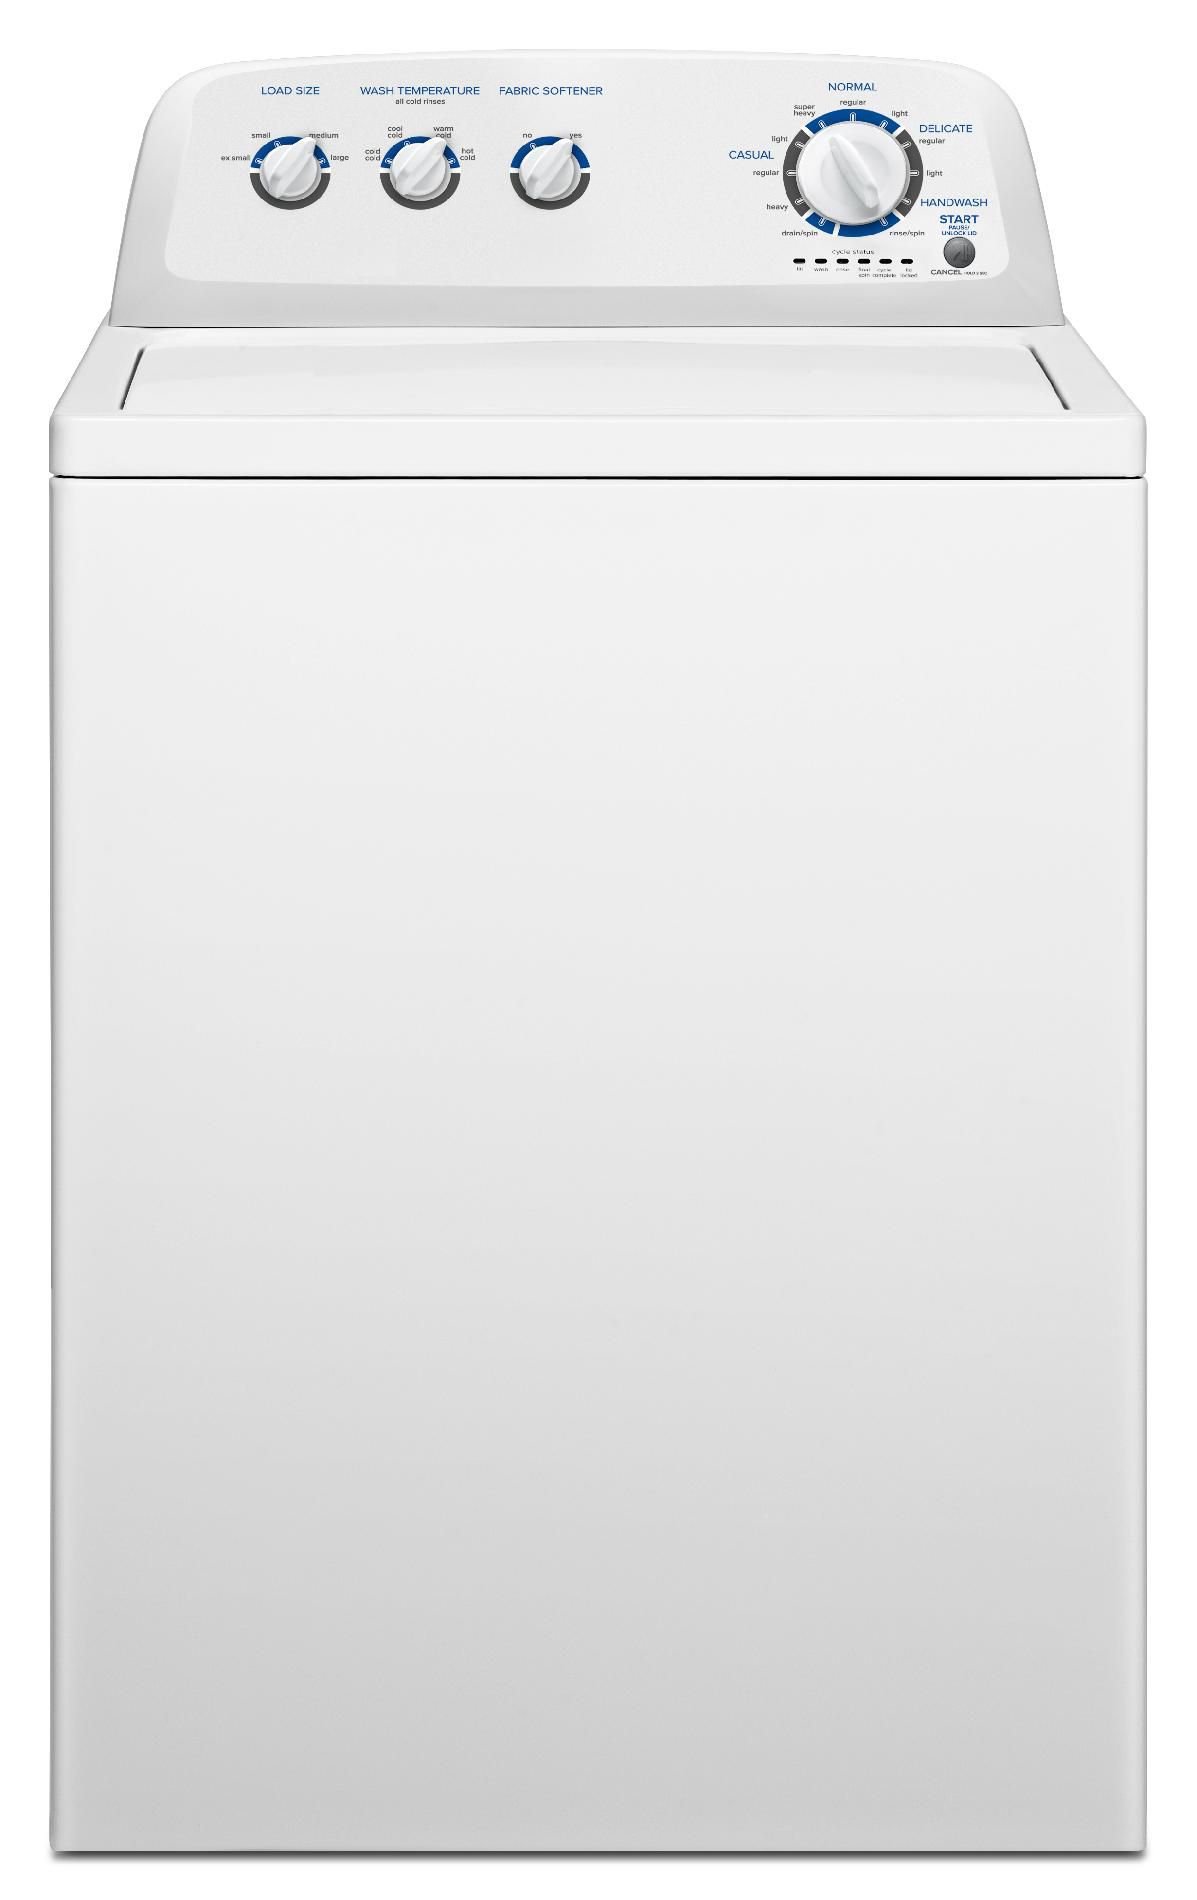 Amana Top-load 3.4 cu. ft. washer